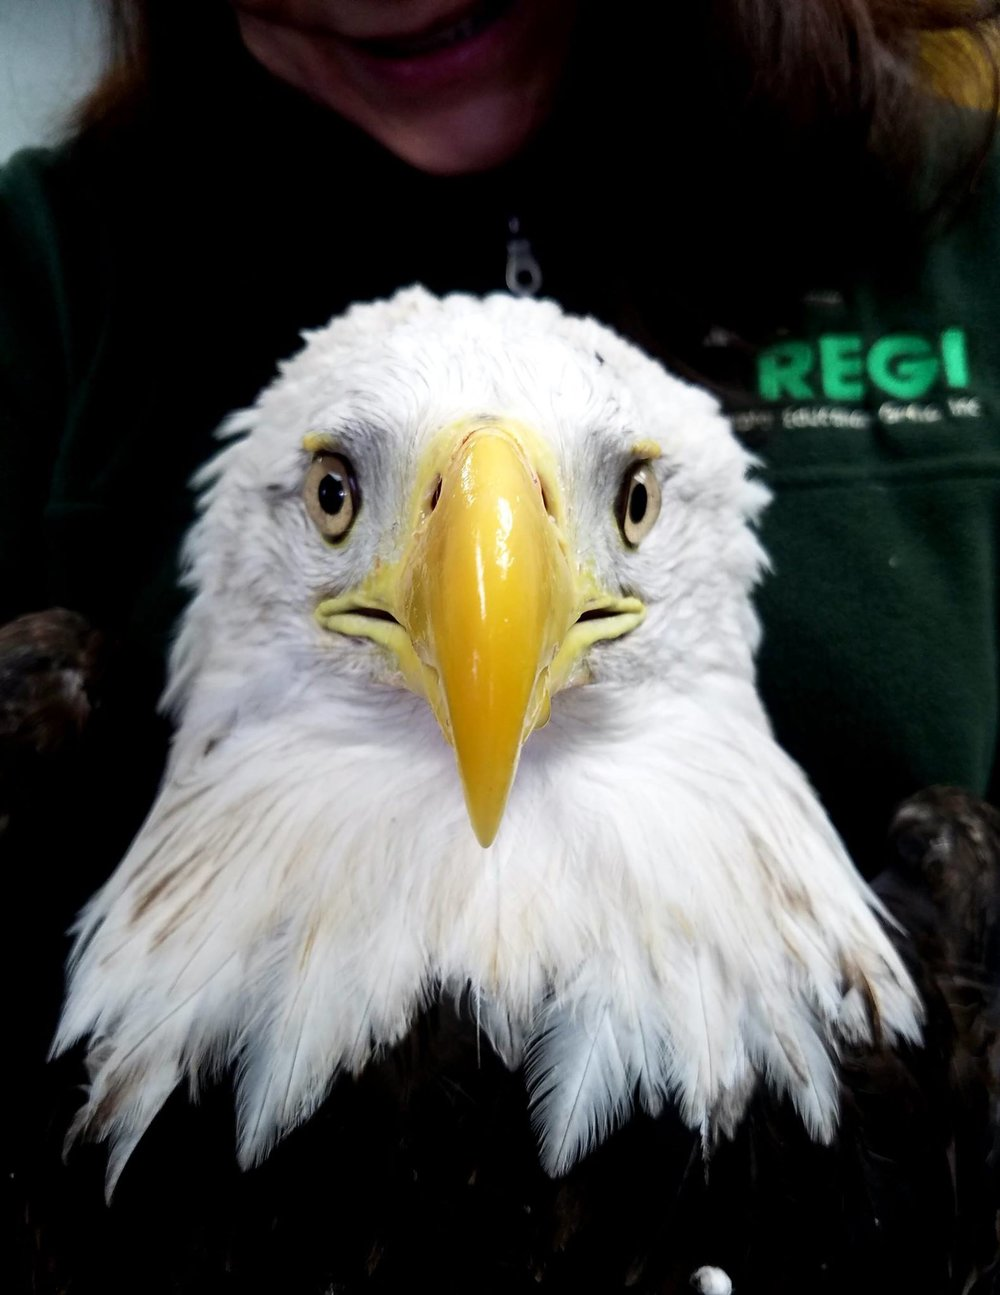 This female eagle was the first released on the 14th.